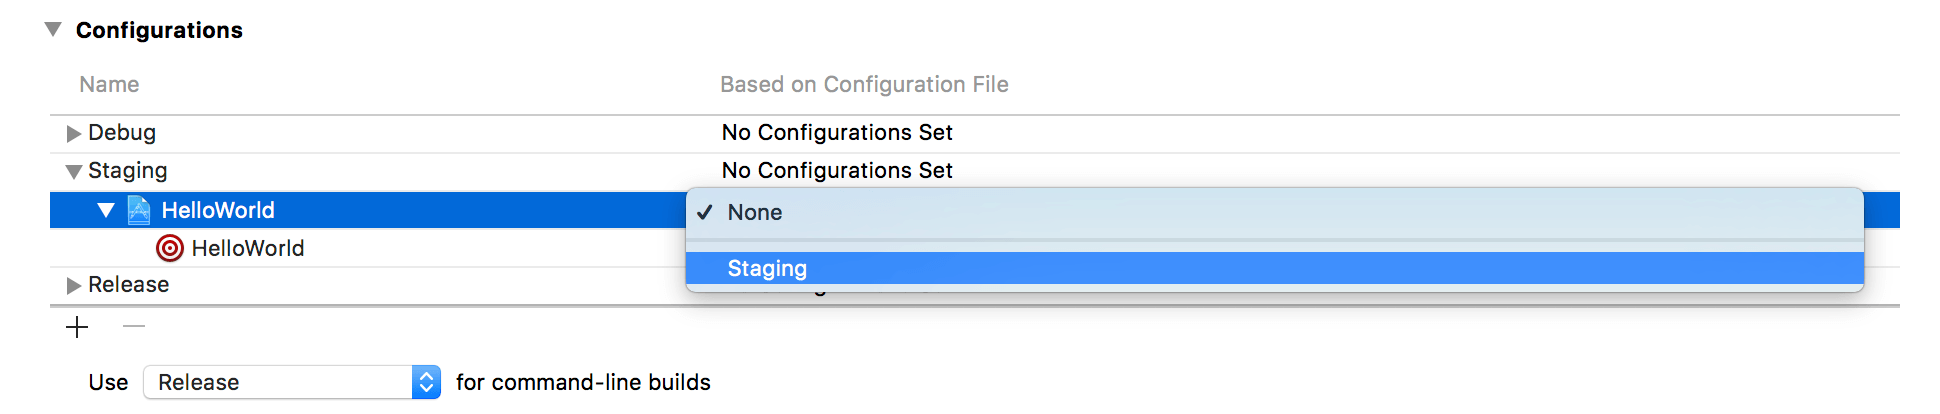 staging-configuration-file